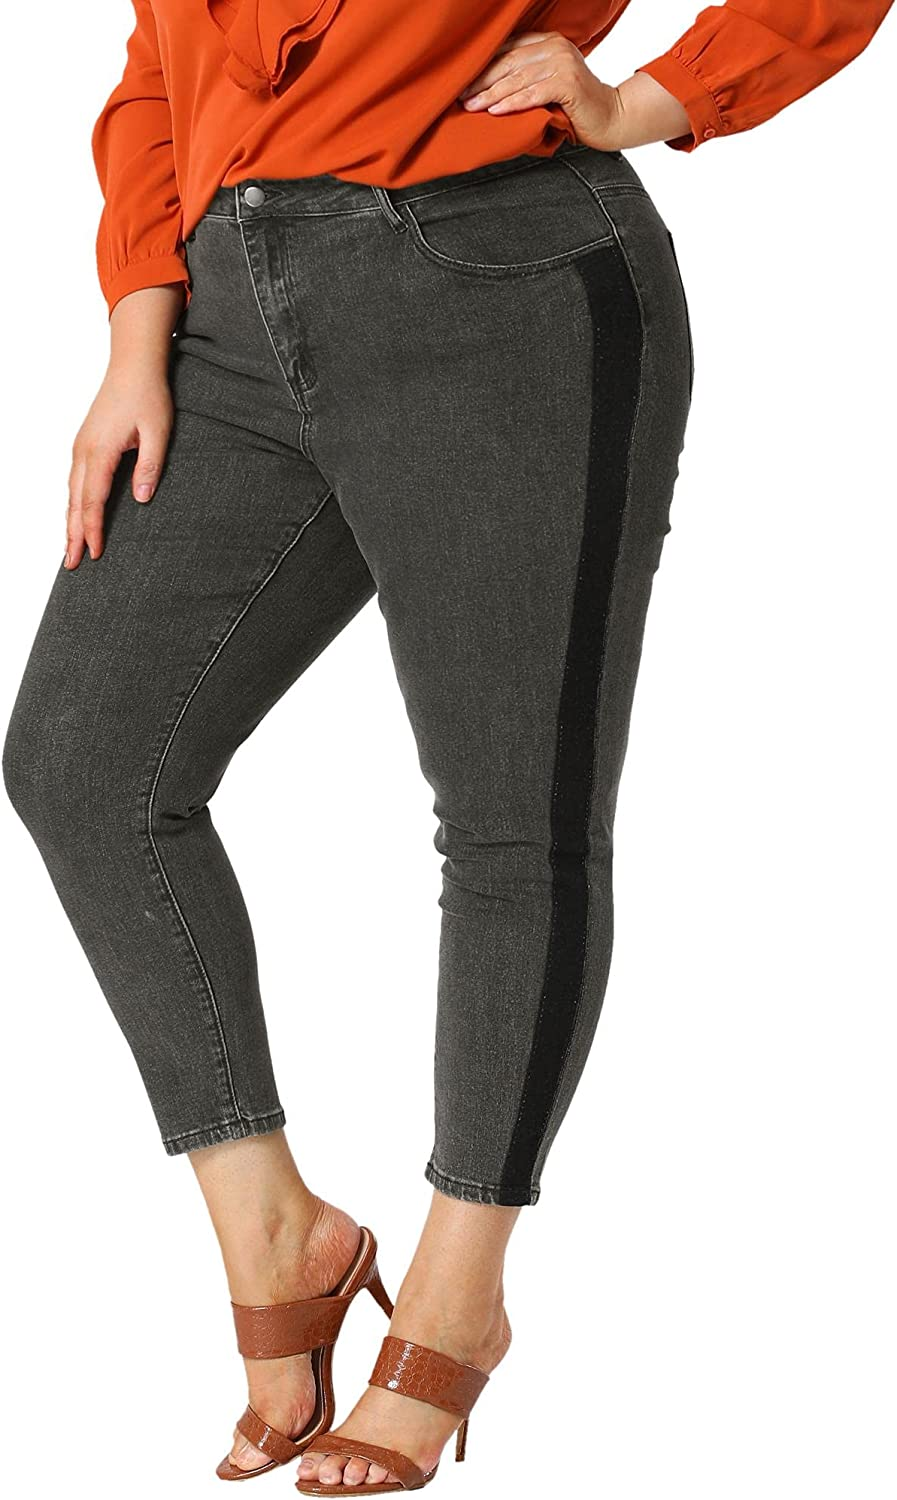 Agnes Orinda Women's Jeans Color Contrast Panel Mid Rise Stretched Skinny Jean